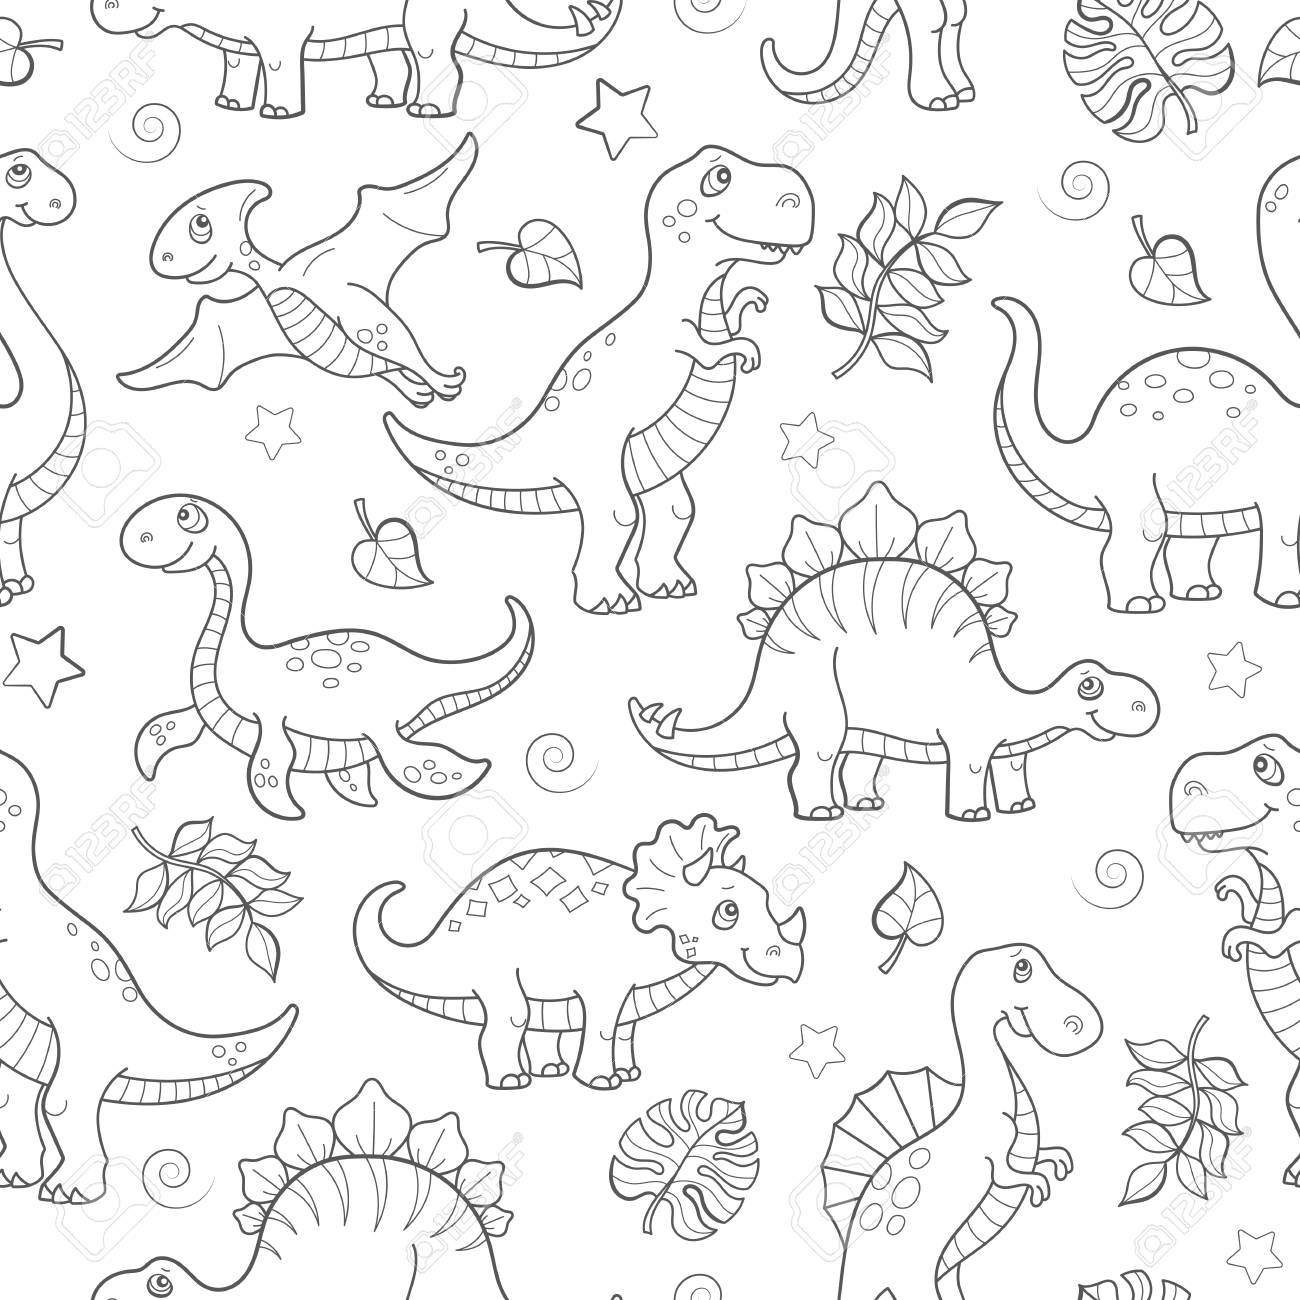 Seamless pattern with dinosaurs and leaves, contoured animals on white background - 97576100